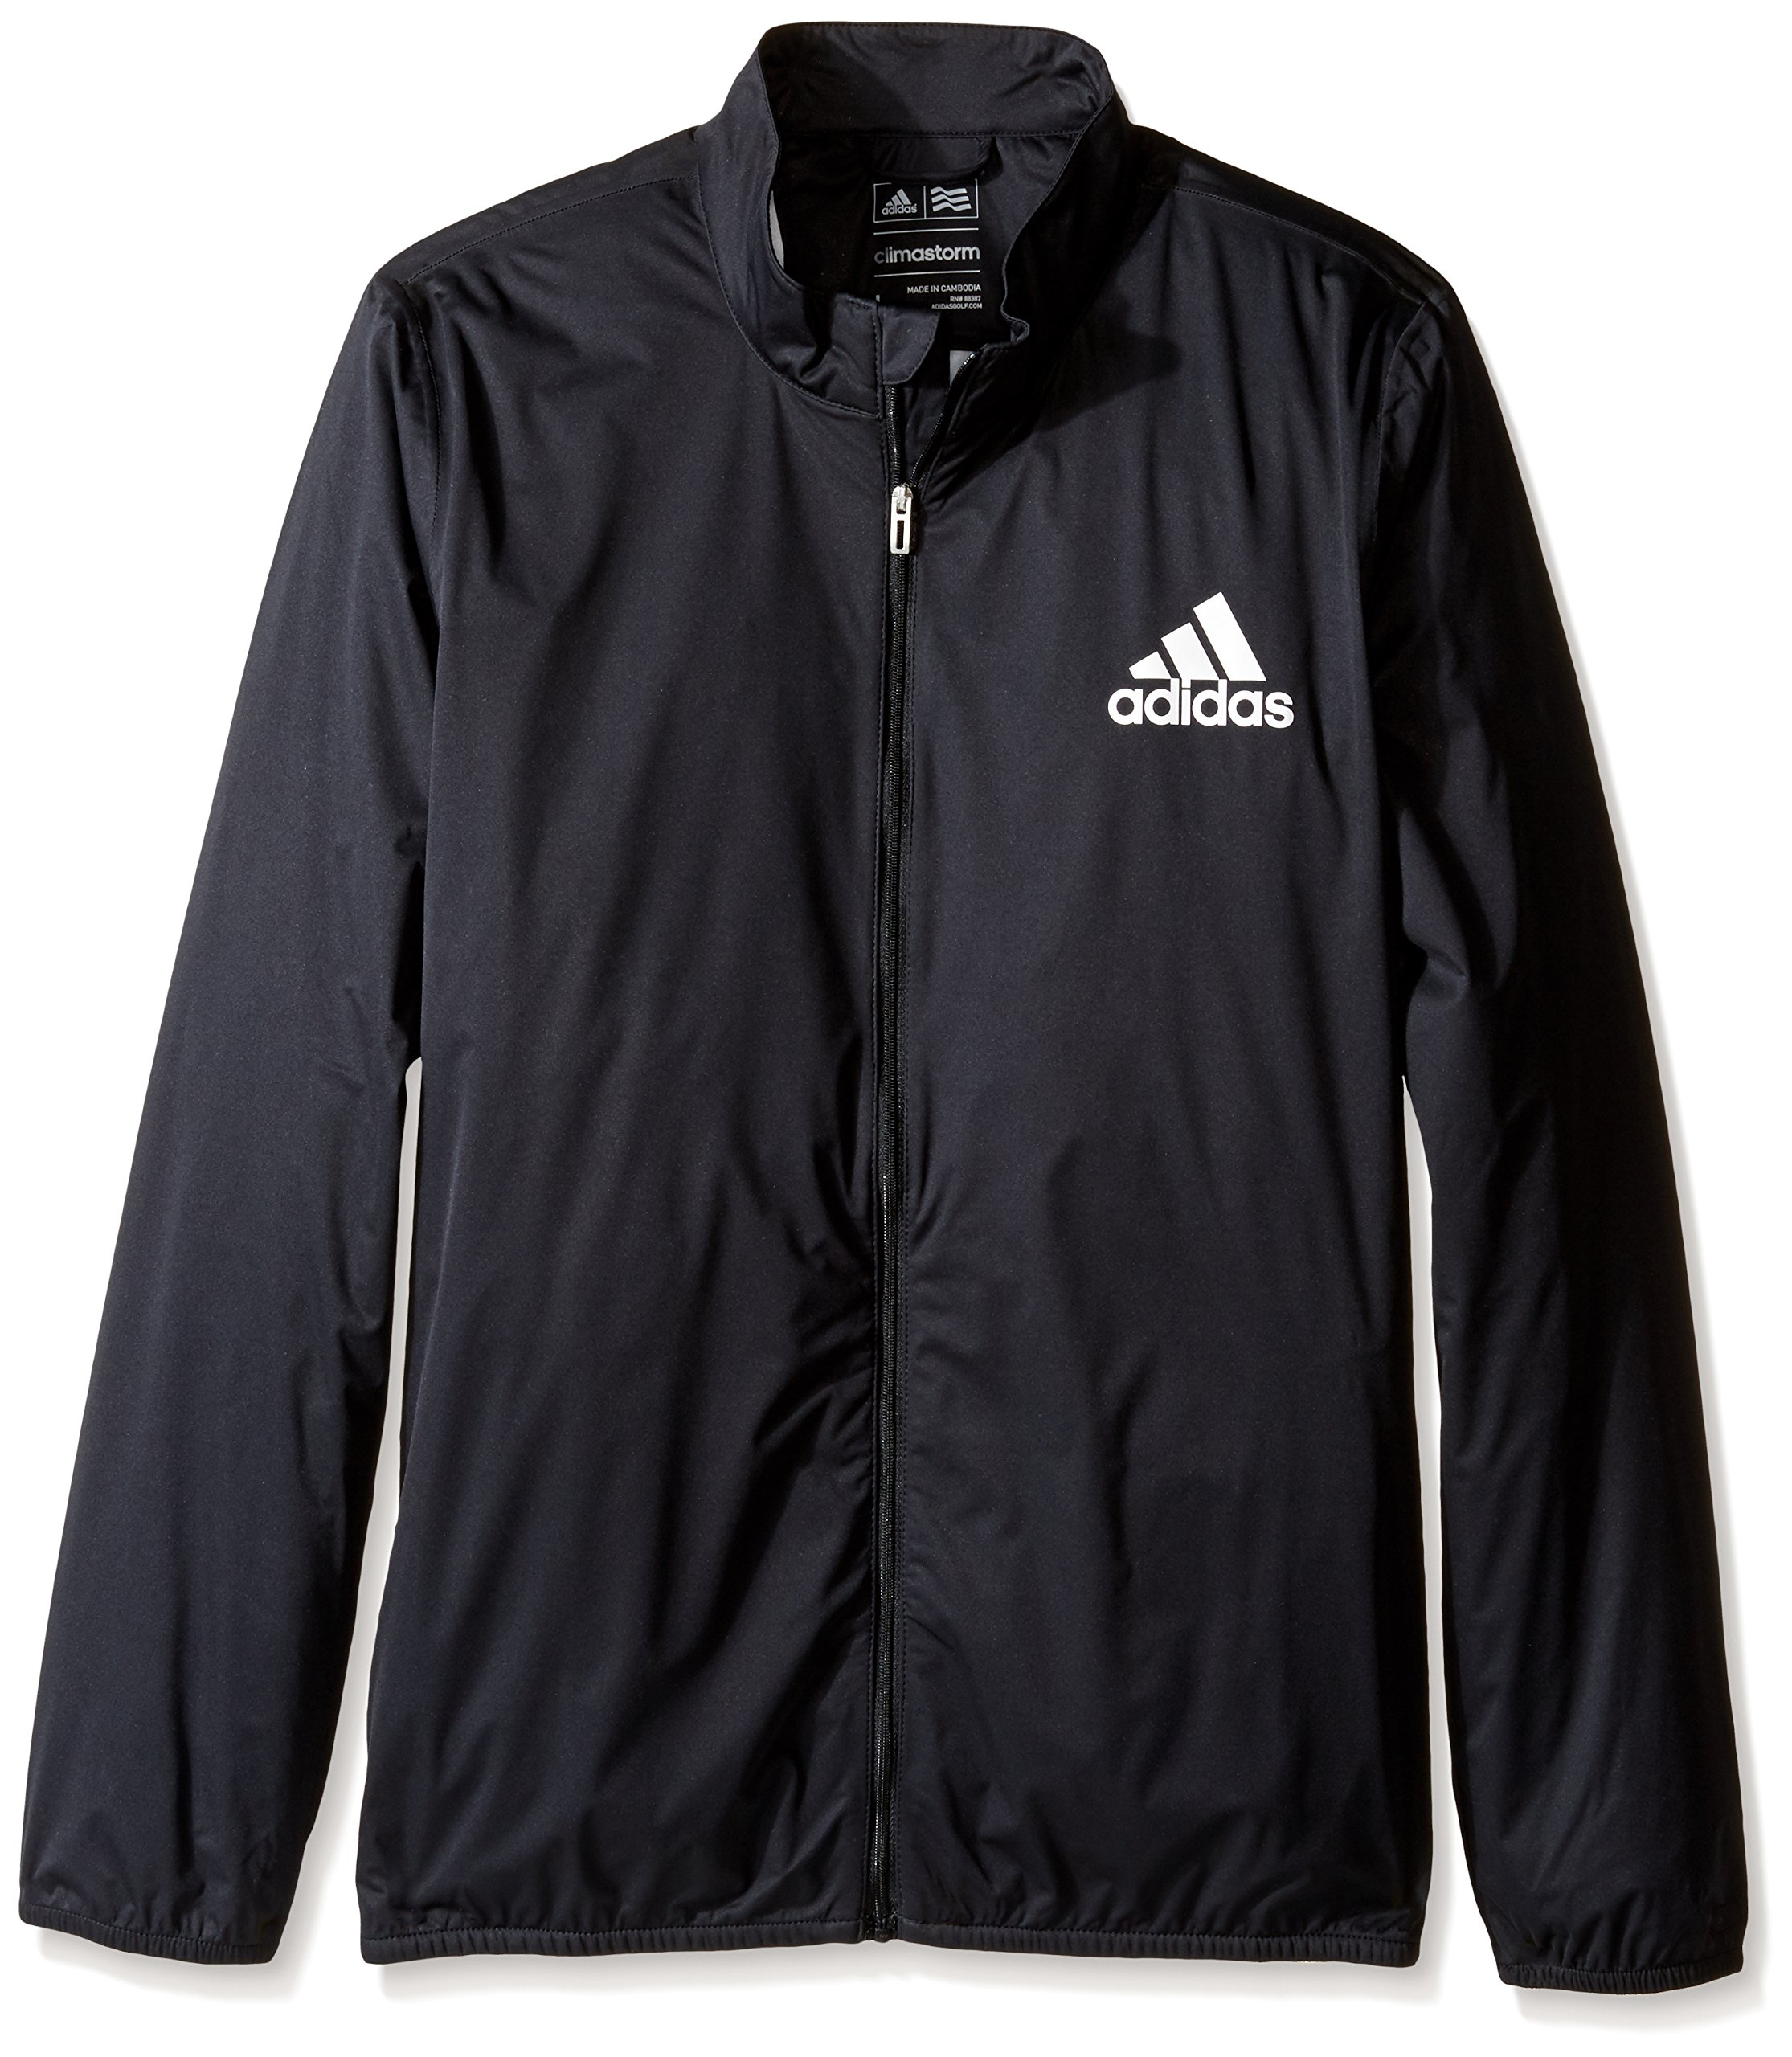 adidas Golf Climastorm Jacket, Black, Large by adidas